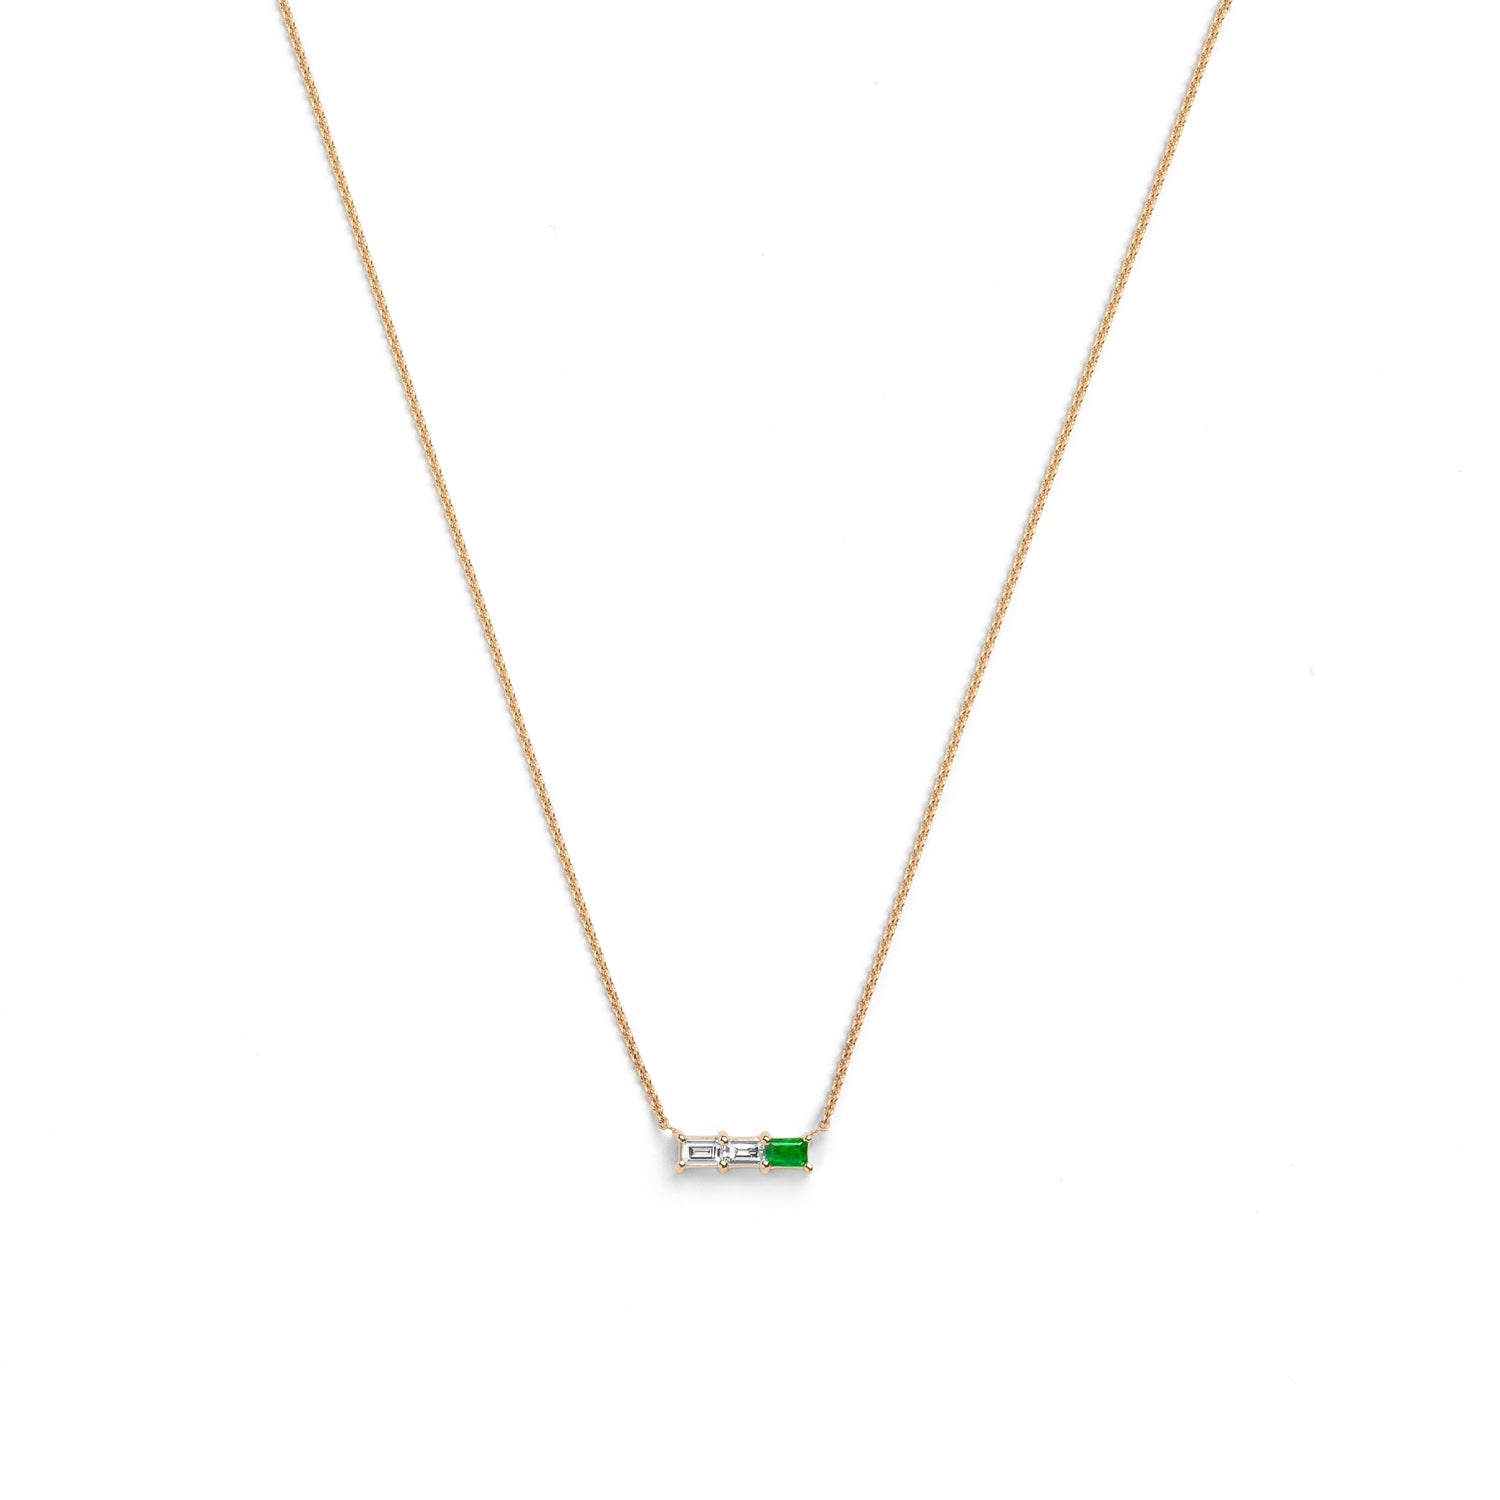 Selin Kent 14K Rhea Necklace with Two White Diamond Baguettes and One Emerald Baguette